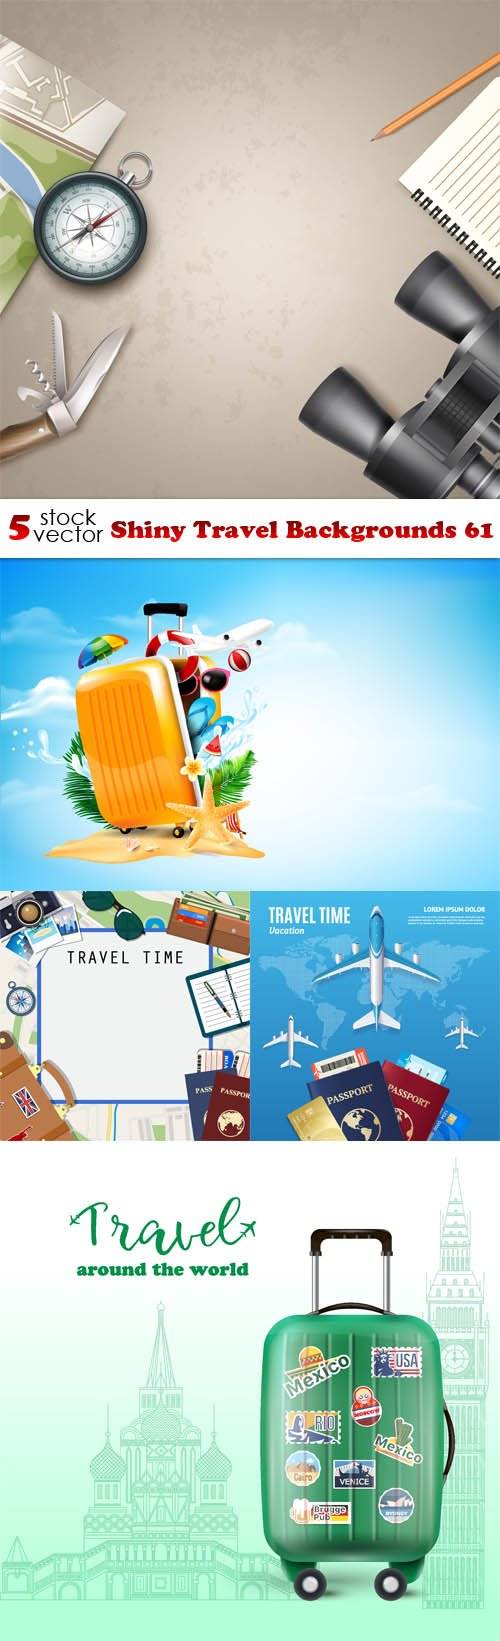 Vectors - Shiny Travel Backgrounds 61